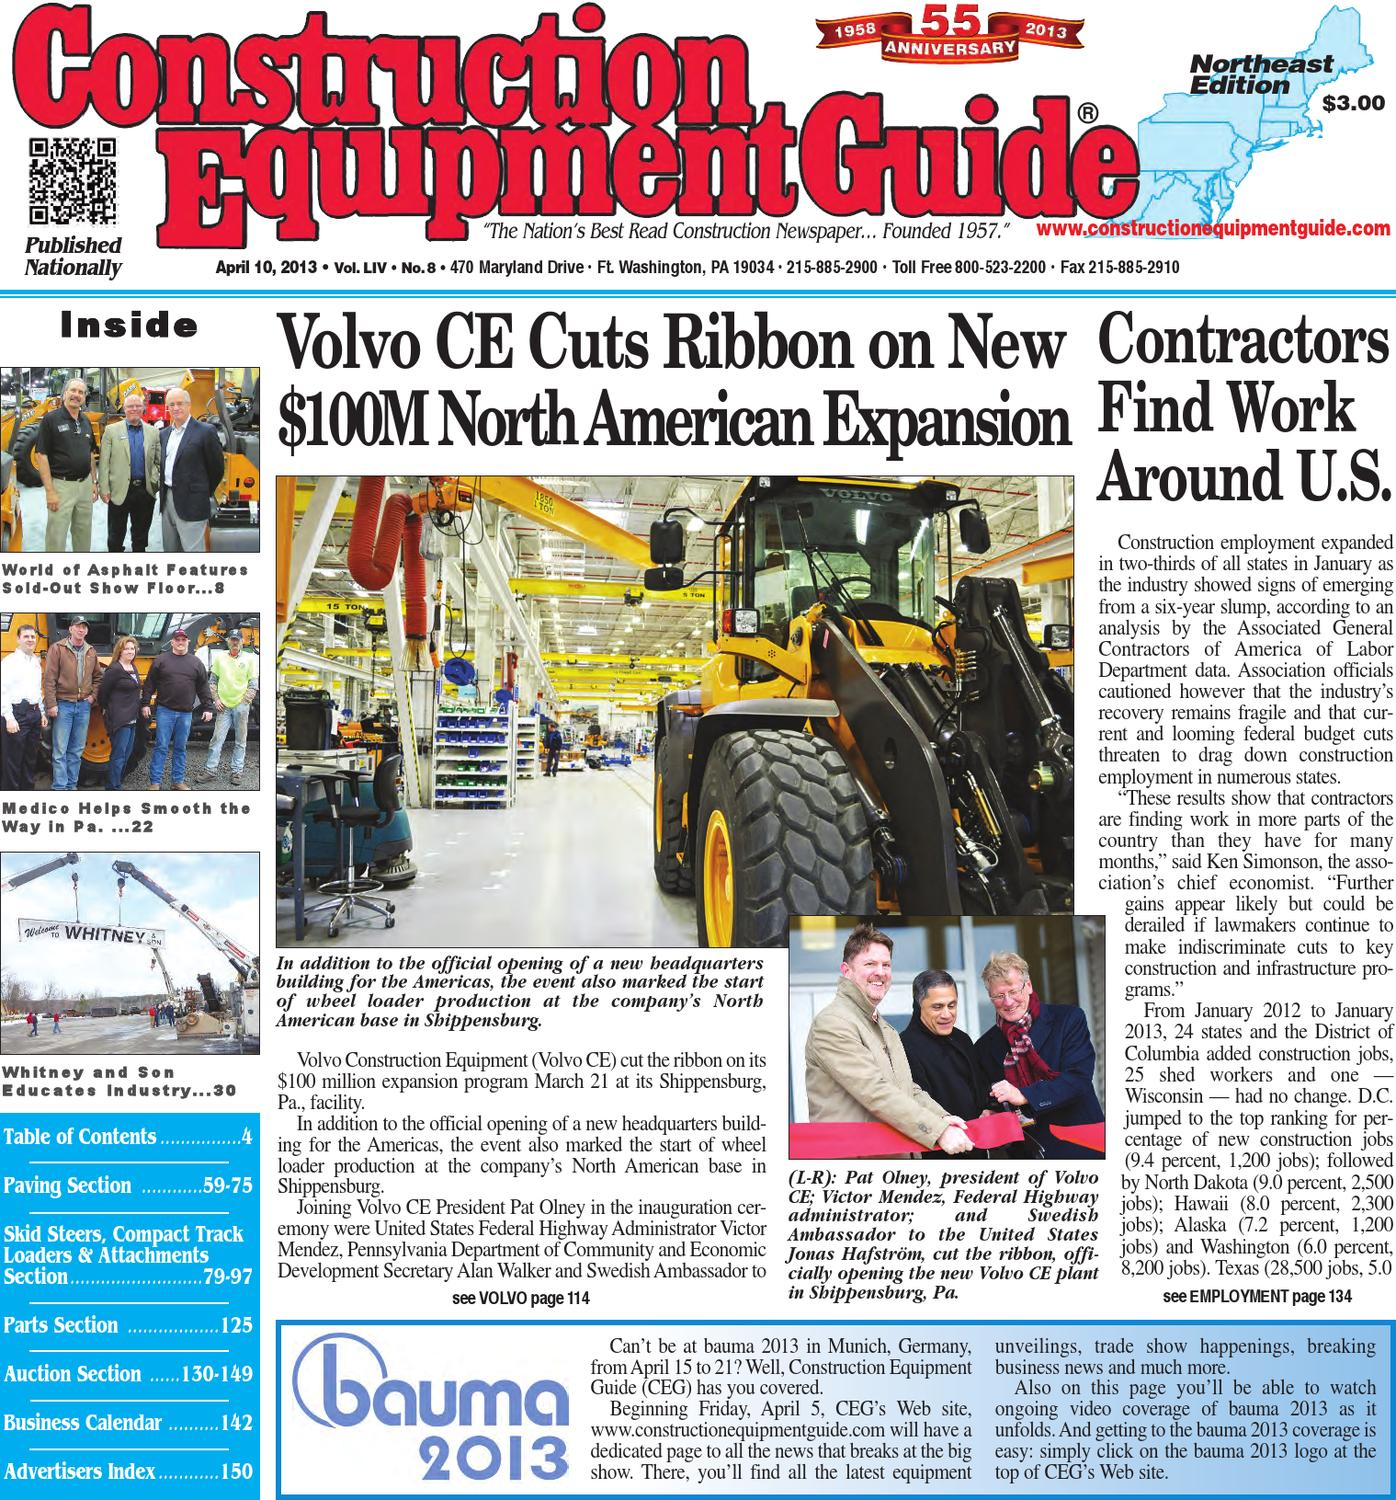 Northeast #8,2013 by Construction Equipment Guide - issuu on